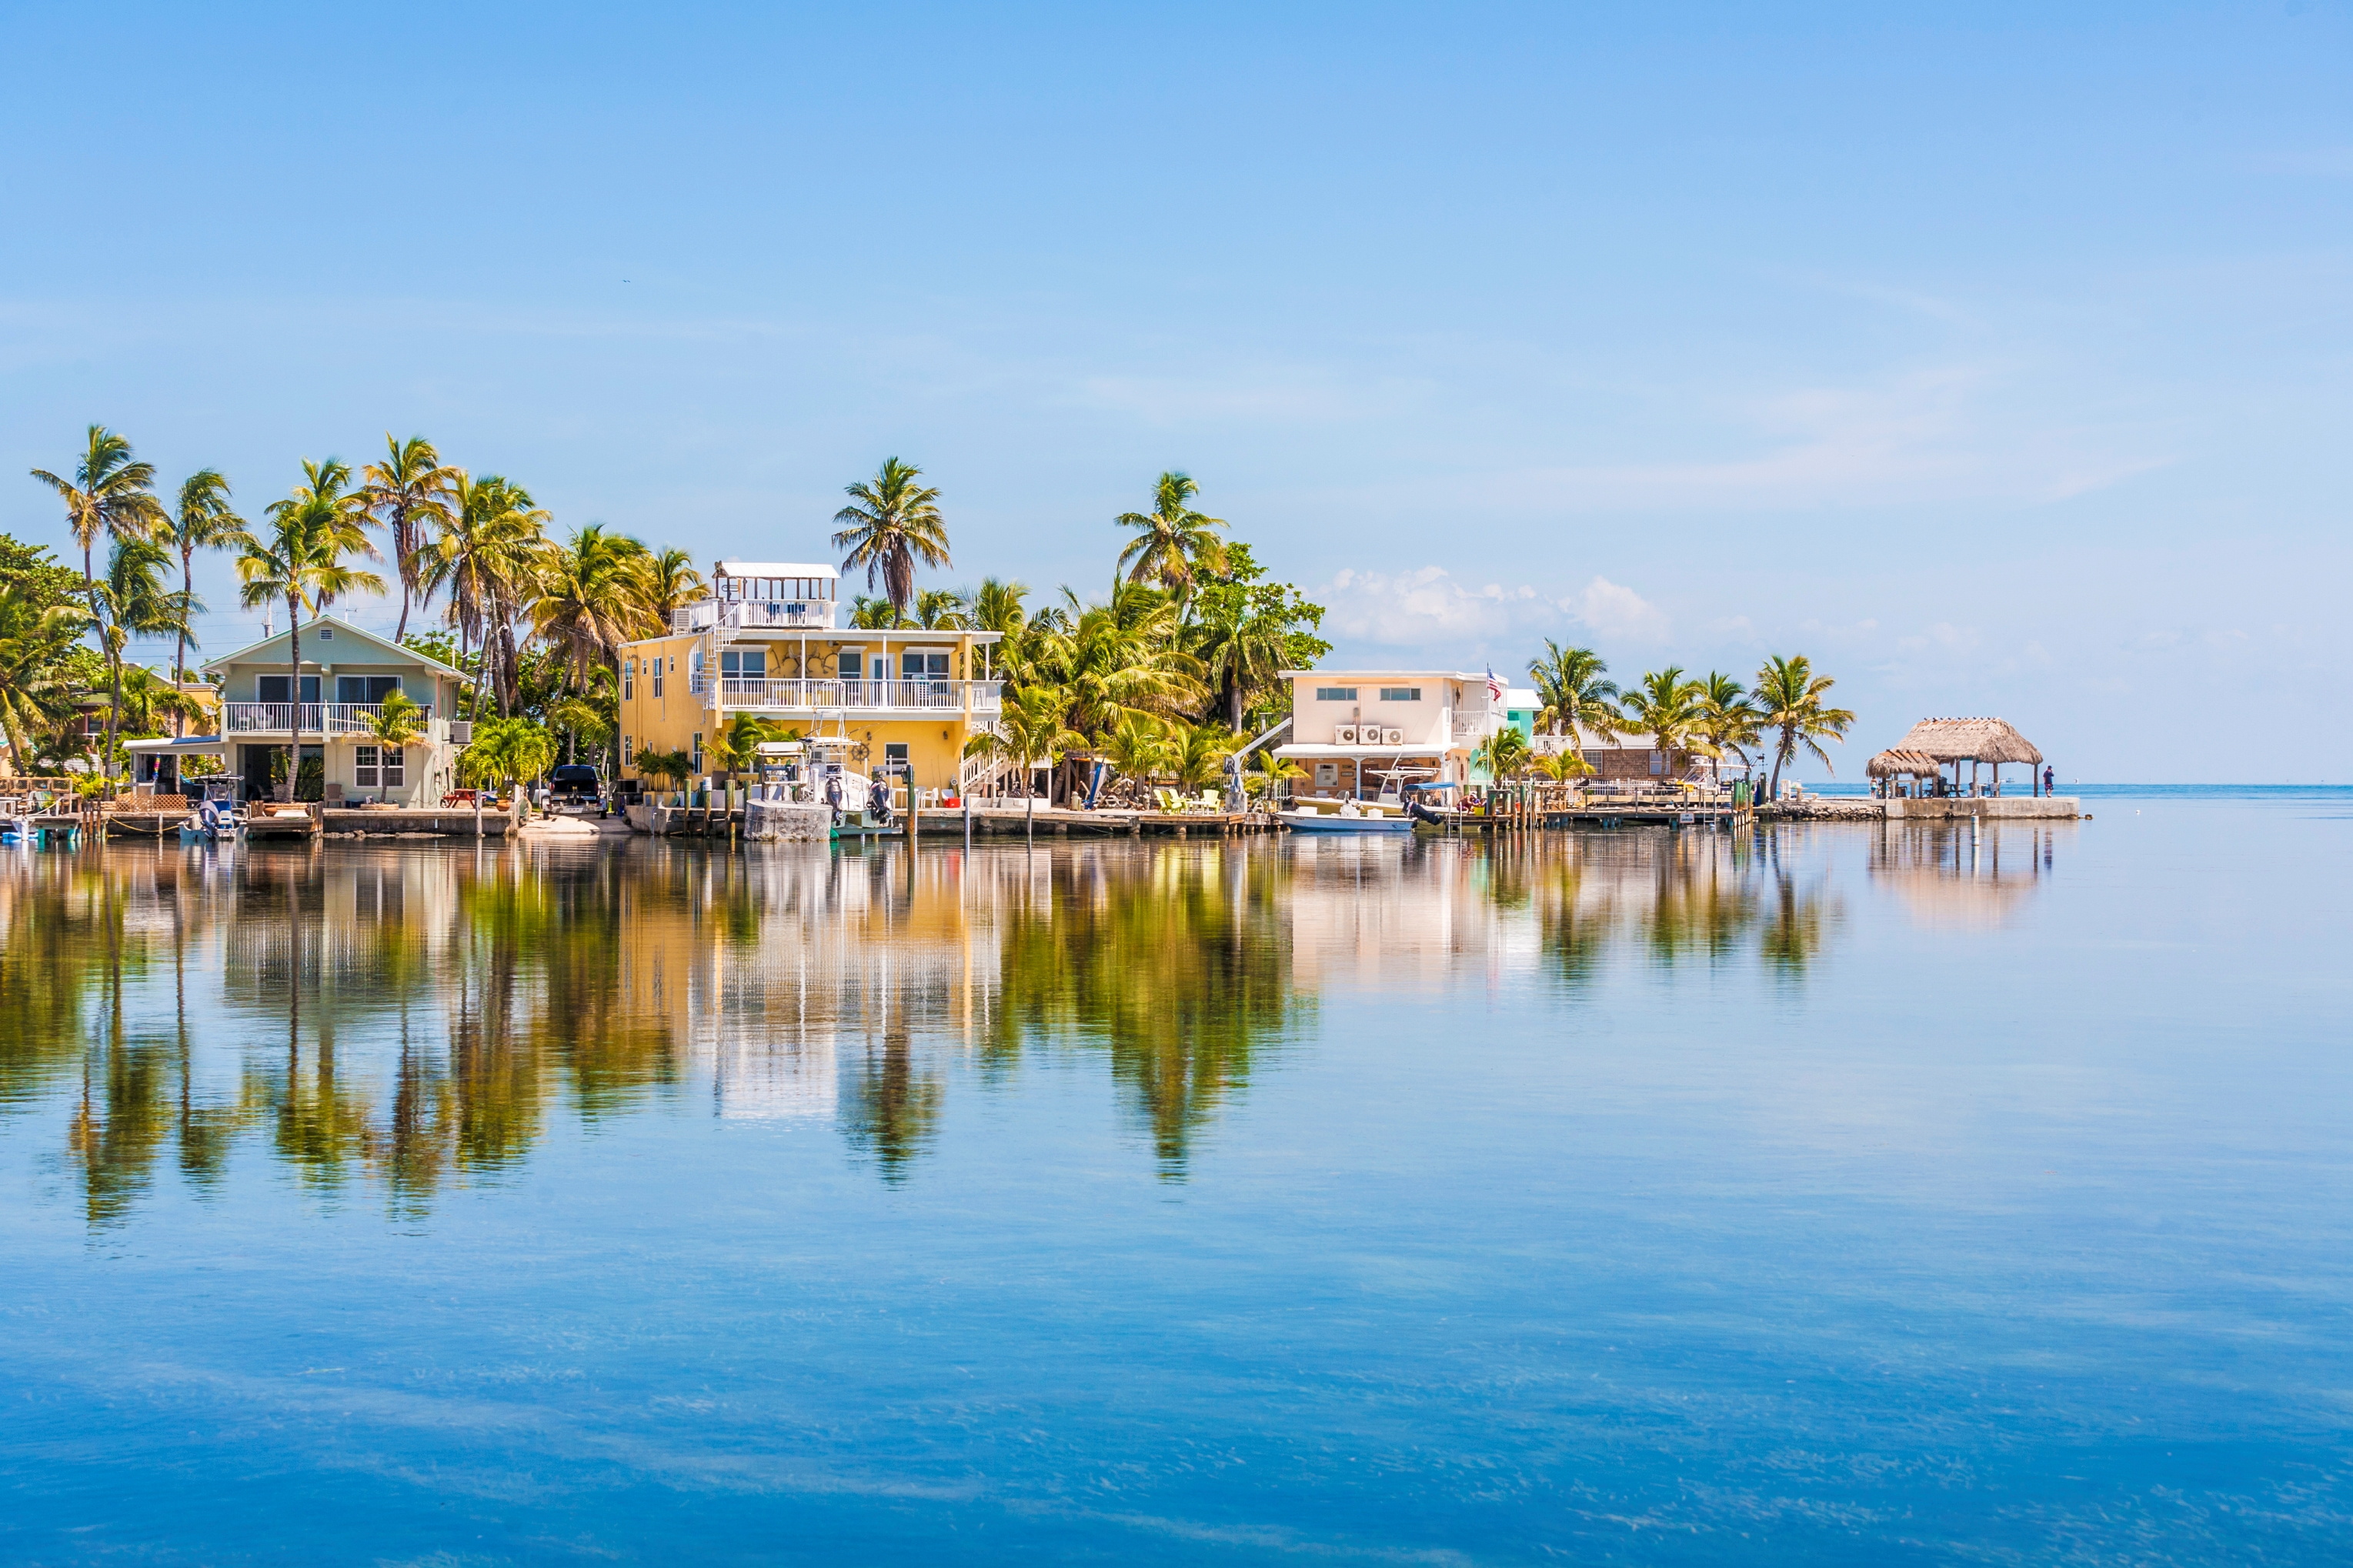 lower florida keys waterfront homes for sale ocean front